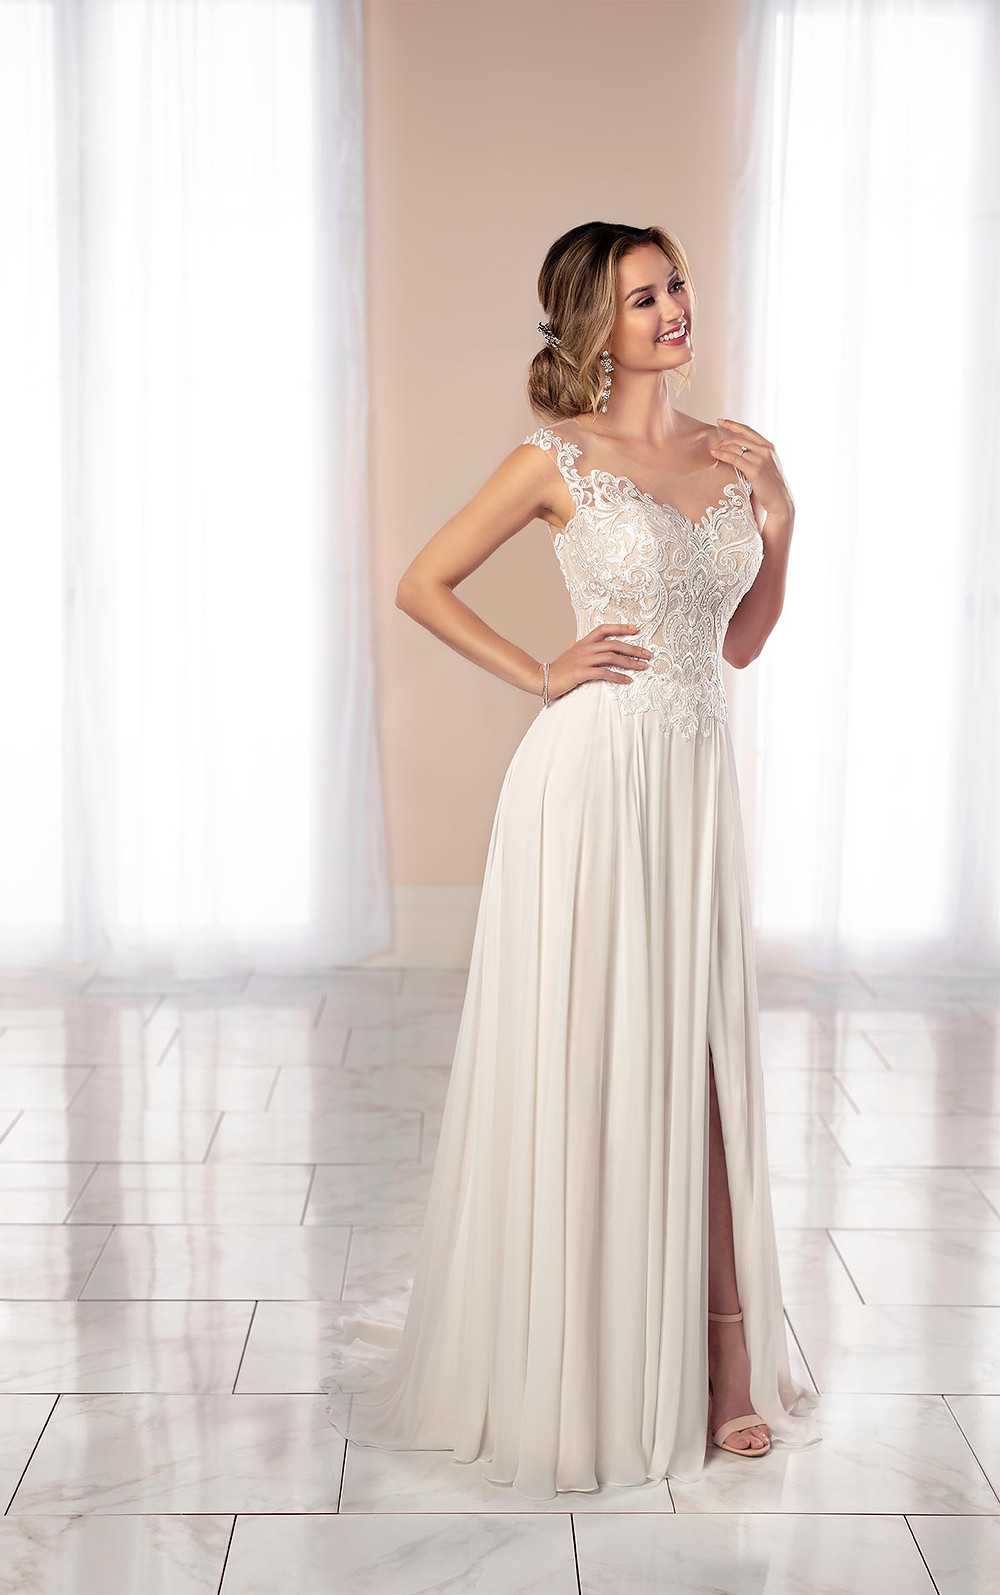 A Stella York 2020 lace and chiffon A-line wedding dress with straps